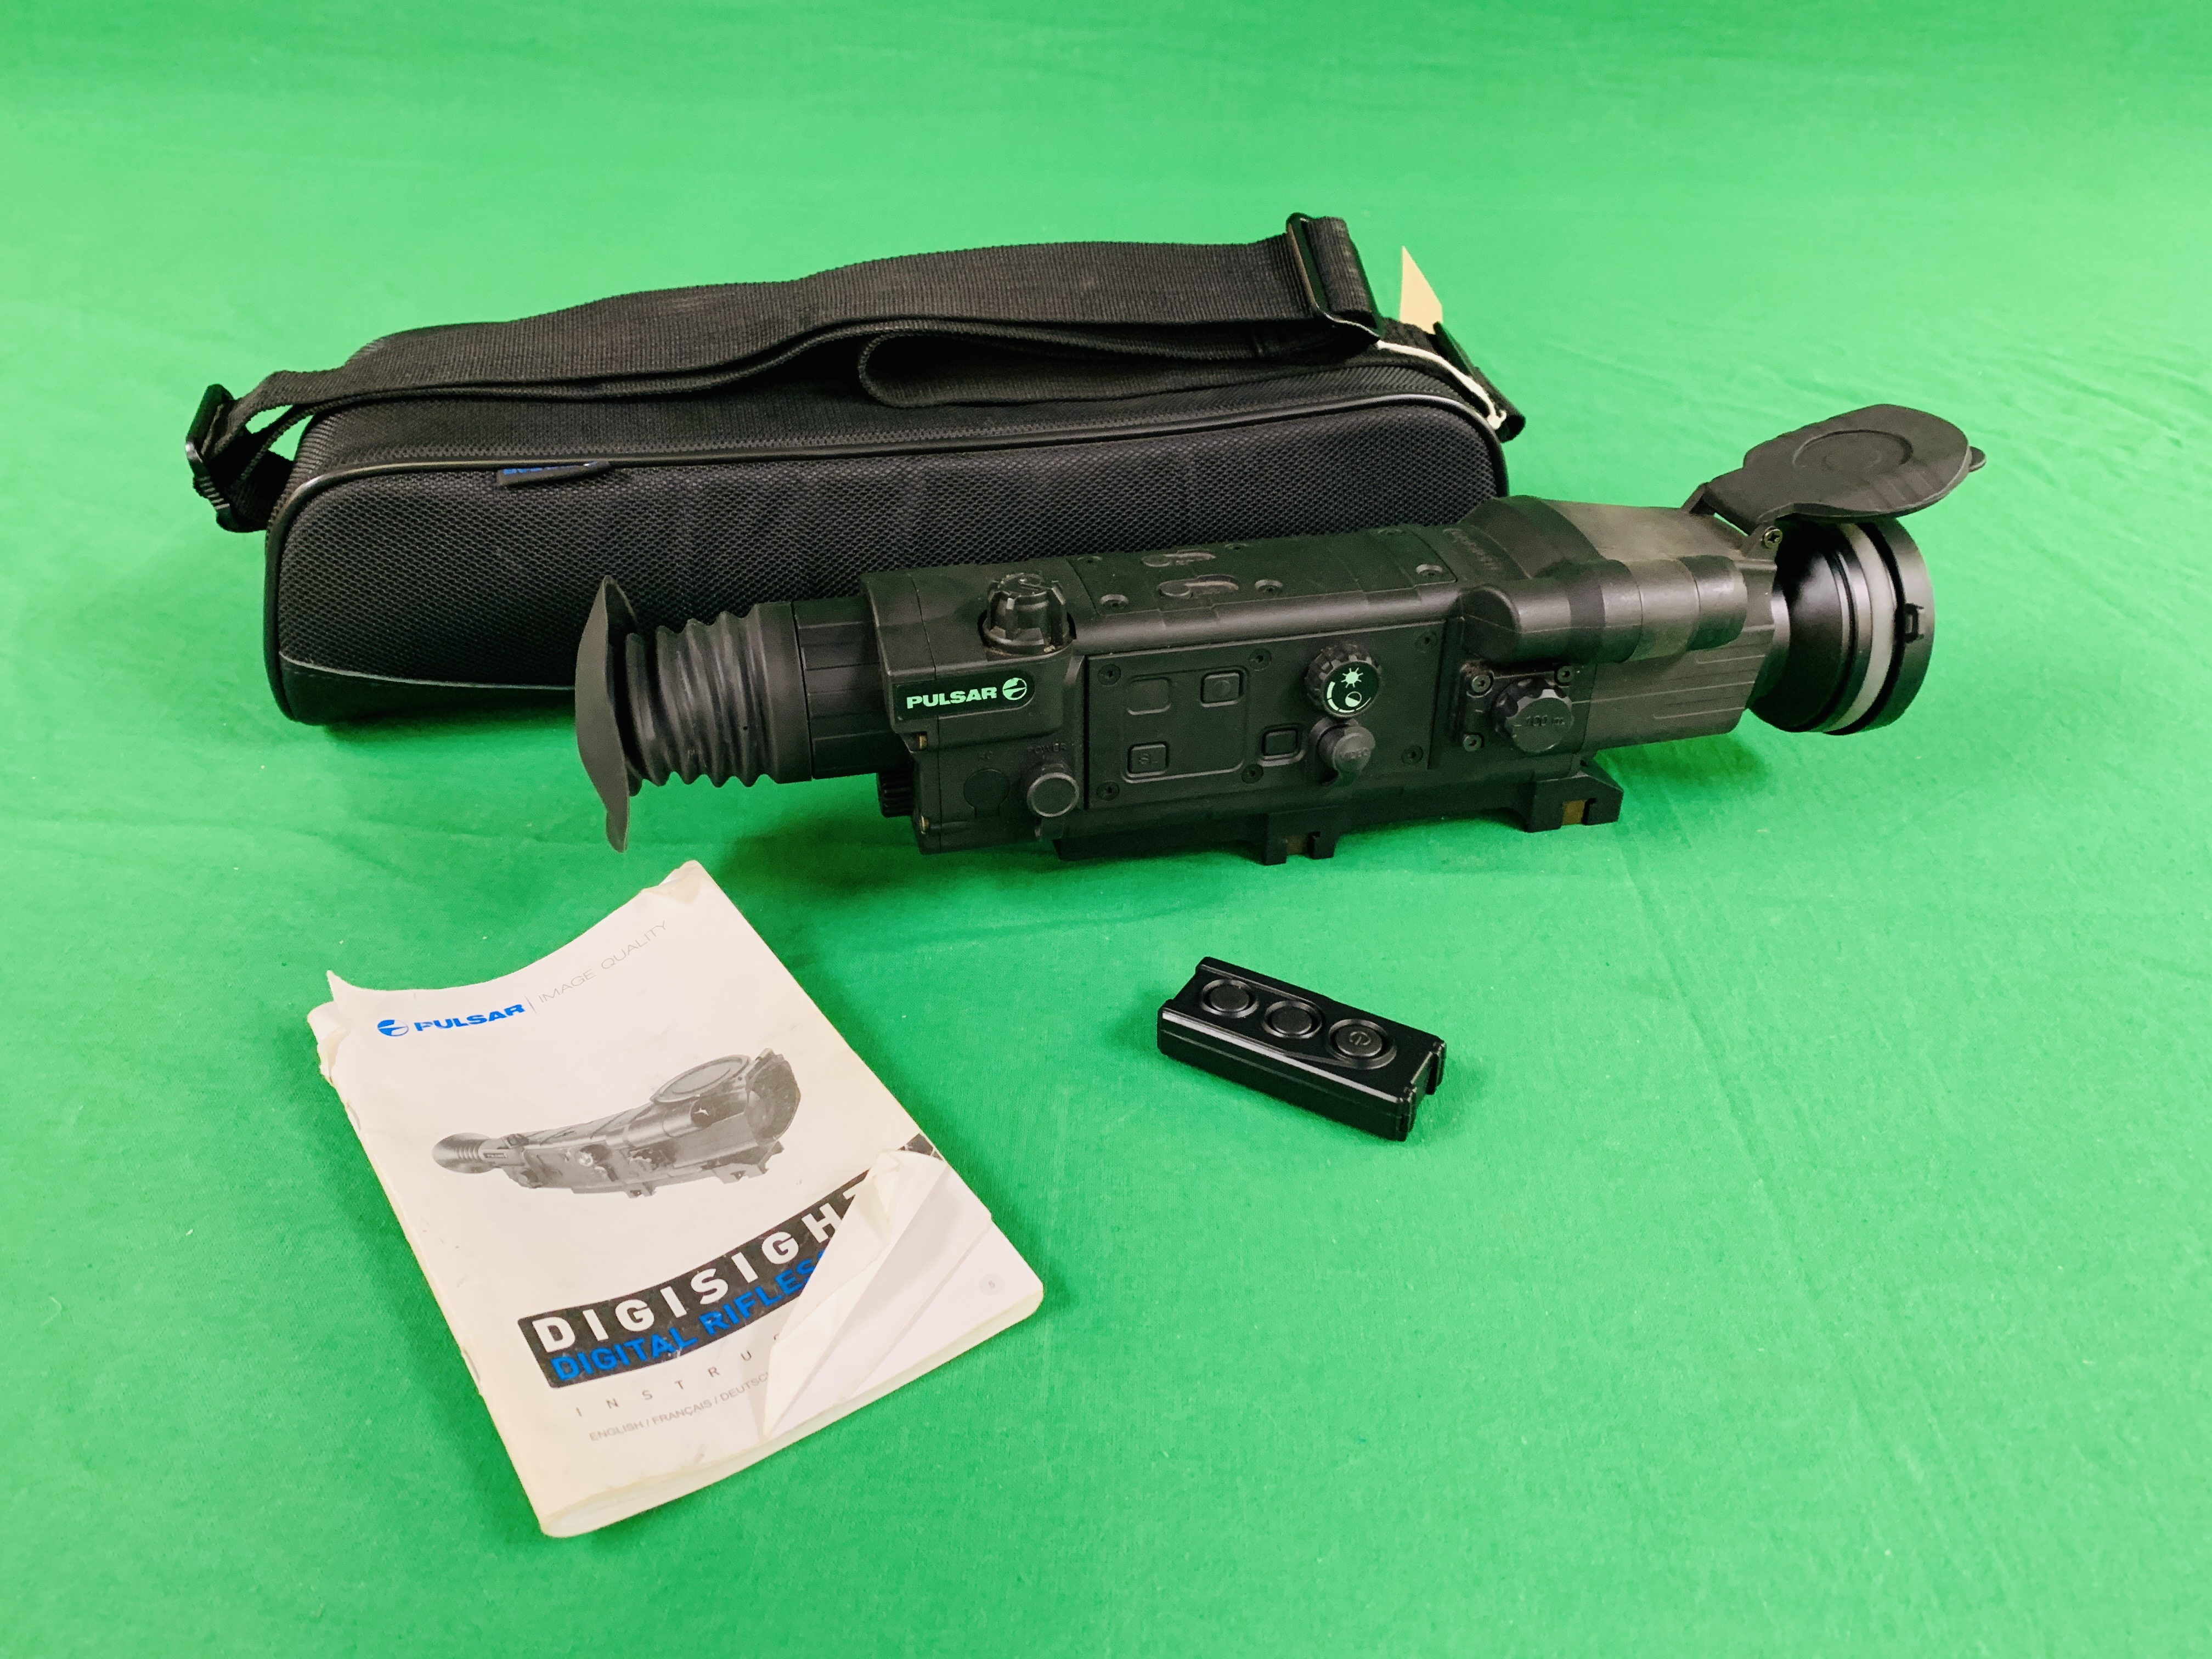 PULSAR N750 DIGI SIGHT RIFLE SCOPE COMPLETE WITH SONY TELE CONVERSION LENS ALONG WITH INSTRUCTION